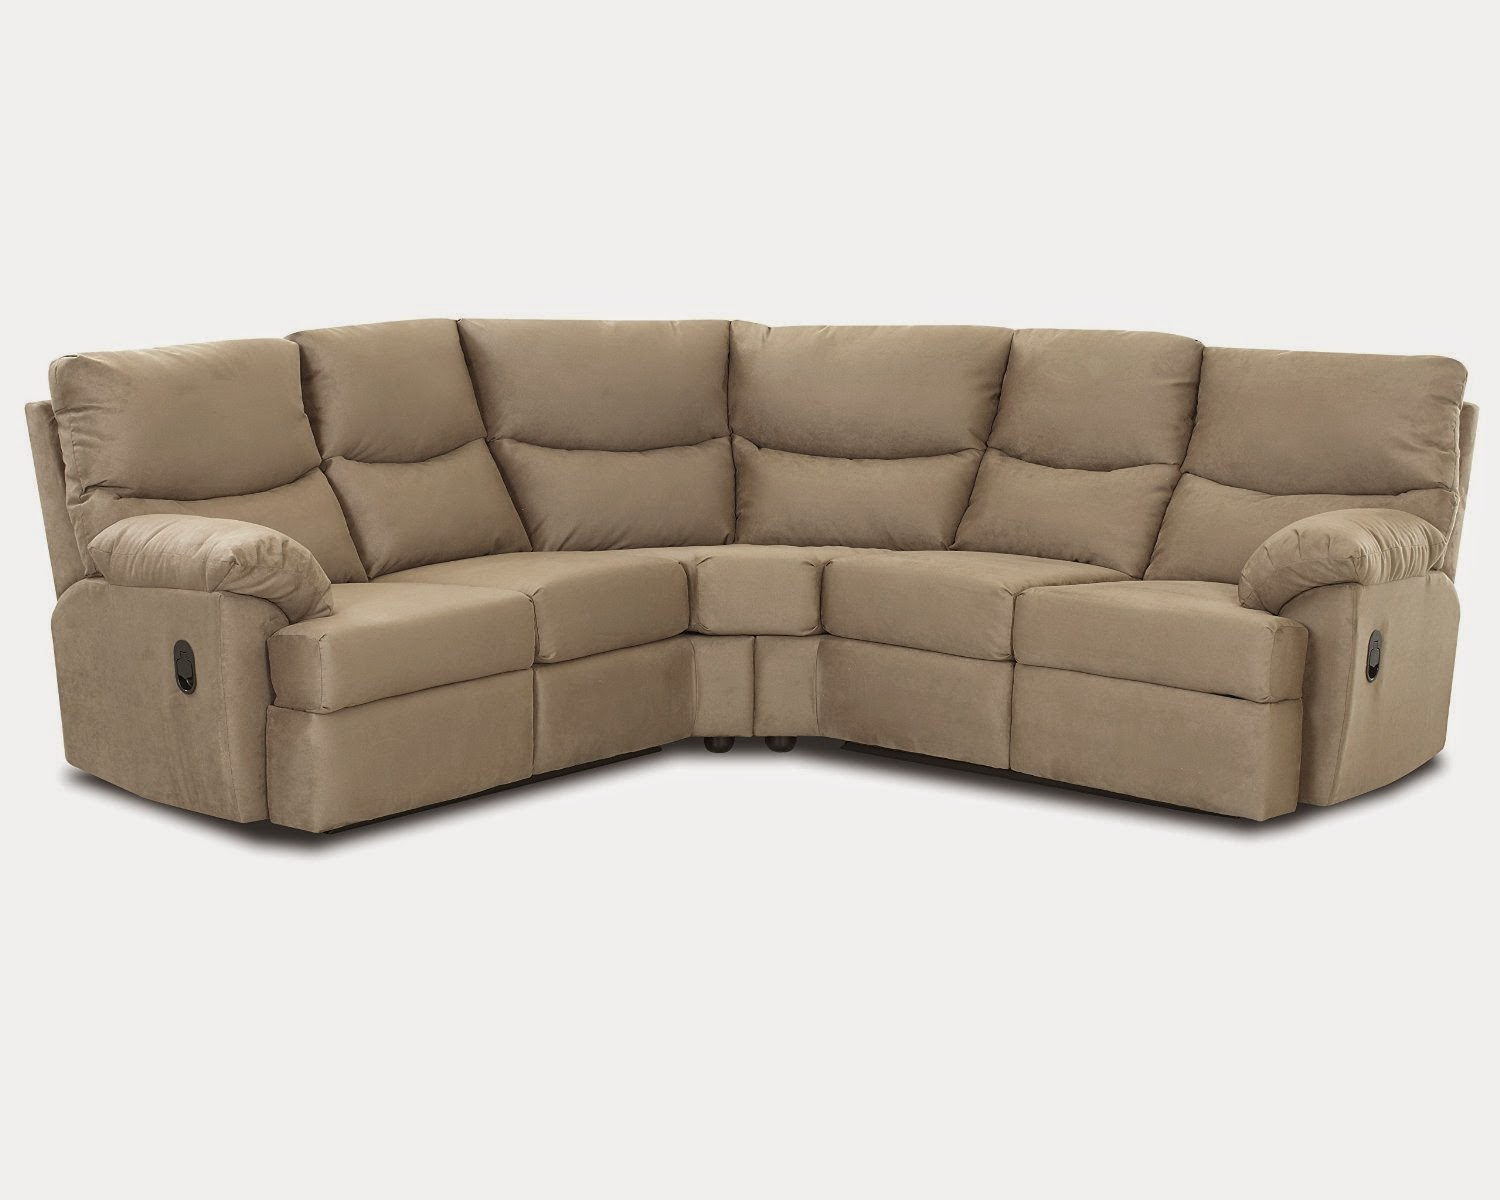 Top seller reclining and recliner sofa loveseat phoenix reclining corner sectional with sleeper Loveseats that recline